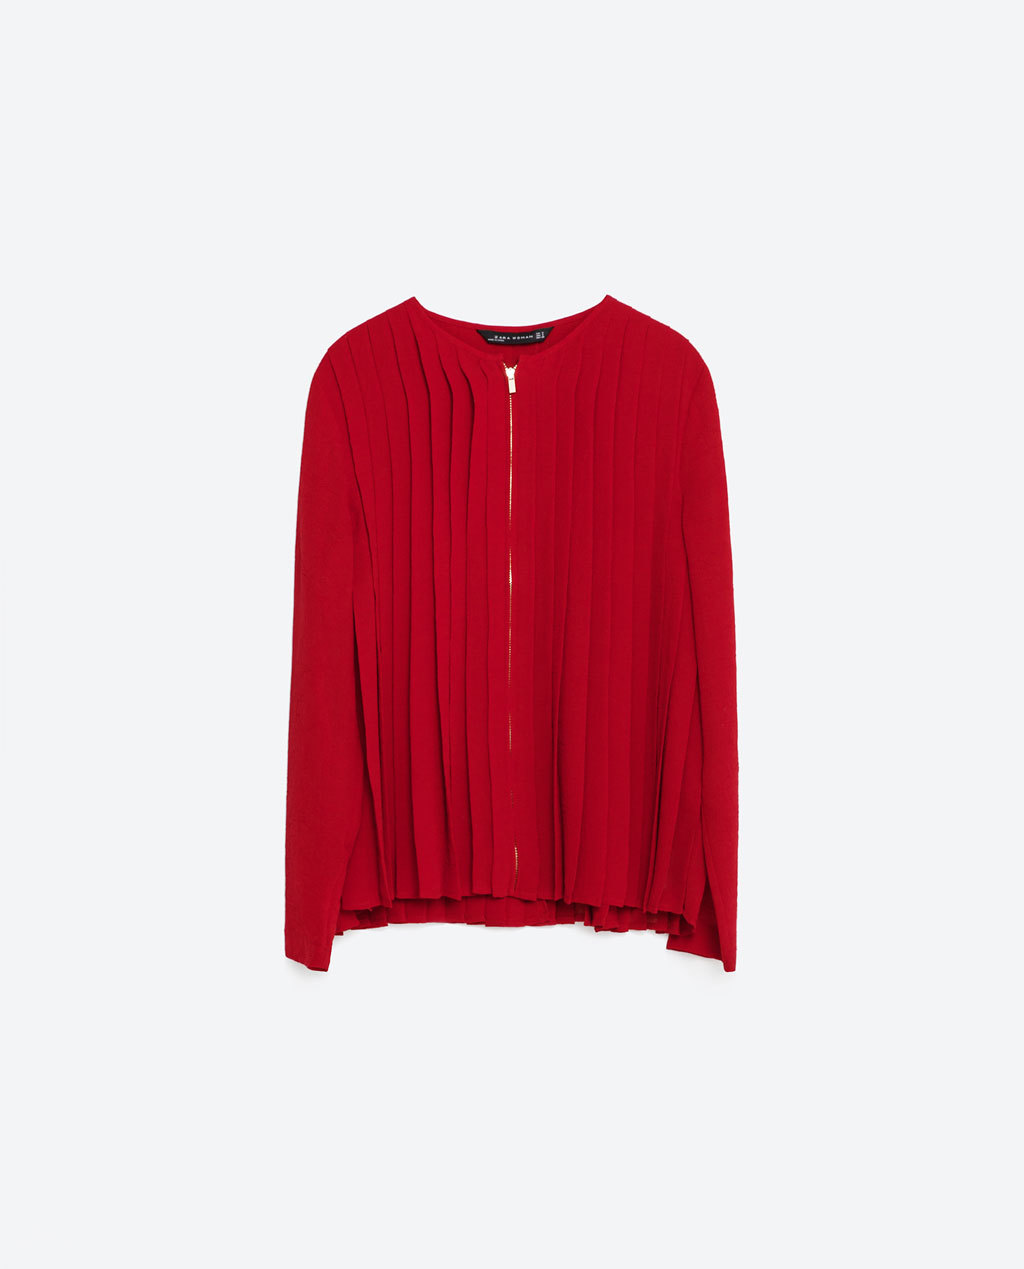 Fine Pleated Blouse - neckline: v-neck; pattern: plain; style: blouse; bust detail: subtle bust detail; predominant colour: true red; occasions: casual; length: standard; fibres: polyester/polyamide - 100%; fit: body skimming; sleeve length: long sleeve; sleeve style: standard; texture group: sheer fabrics/chiffon/organza etc.; pattern type: fabric; season: s/s 2016; wardrobe: highlight